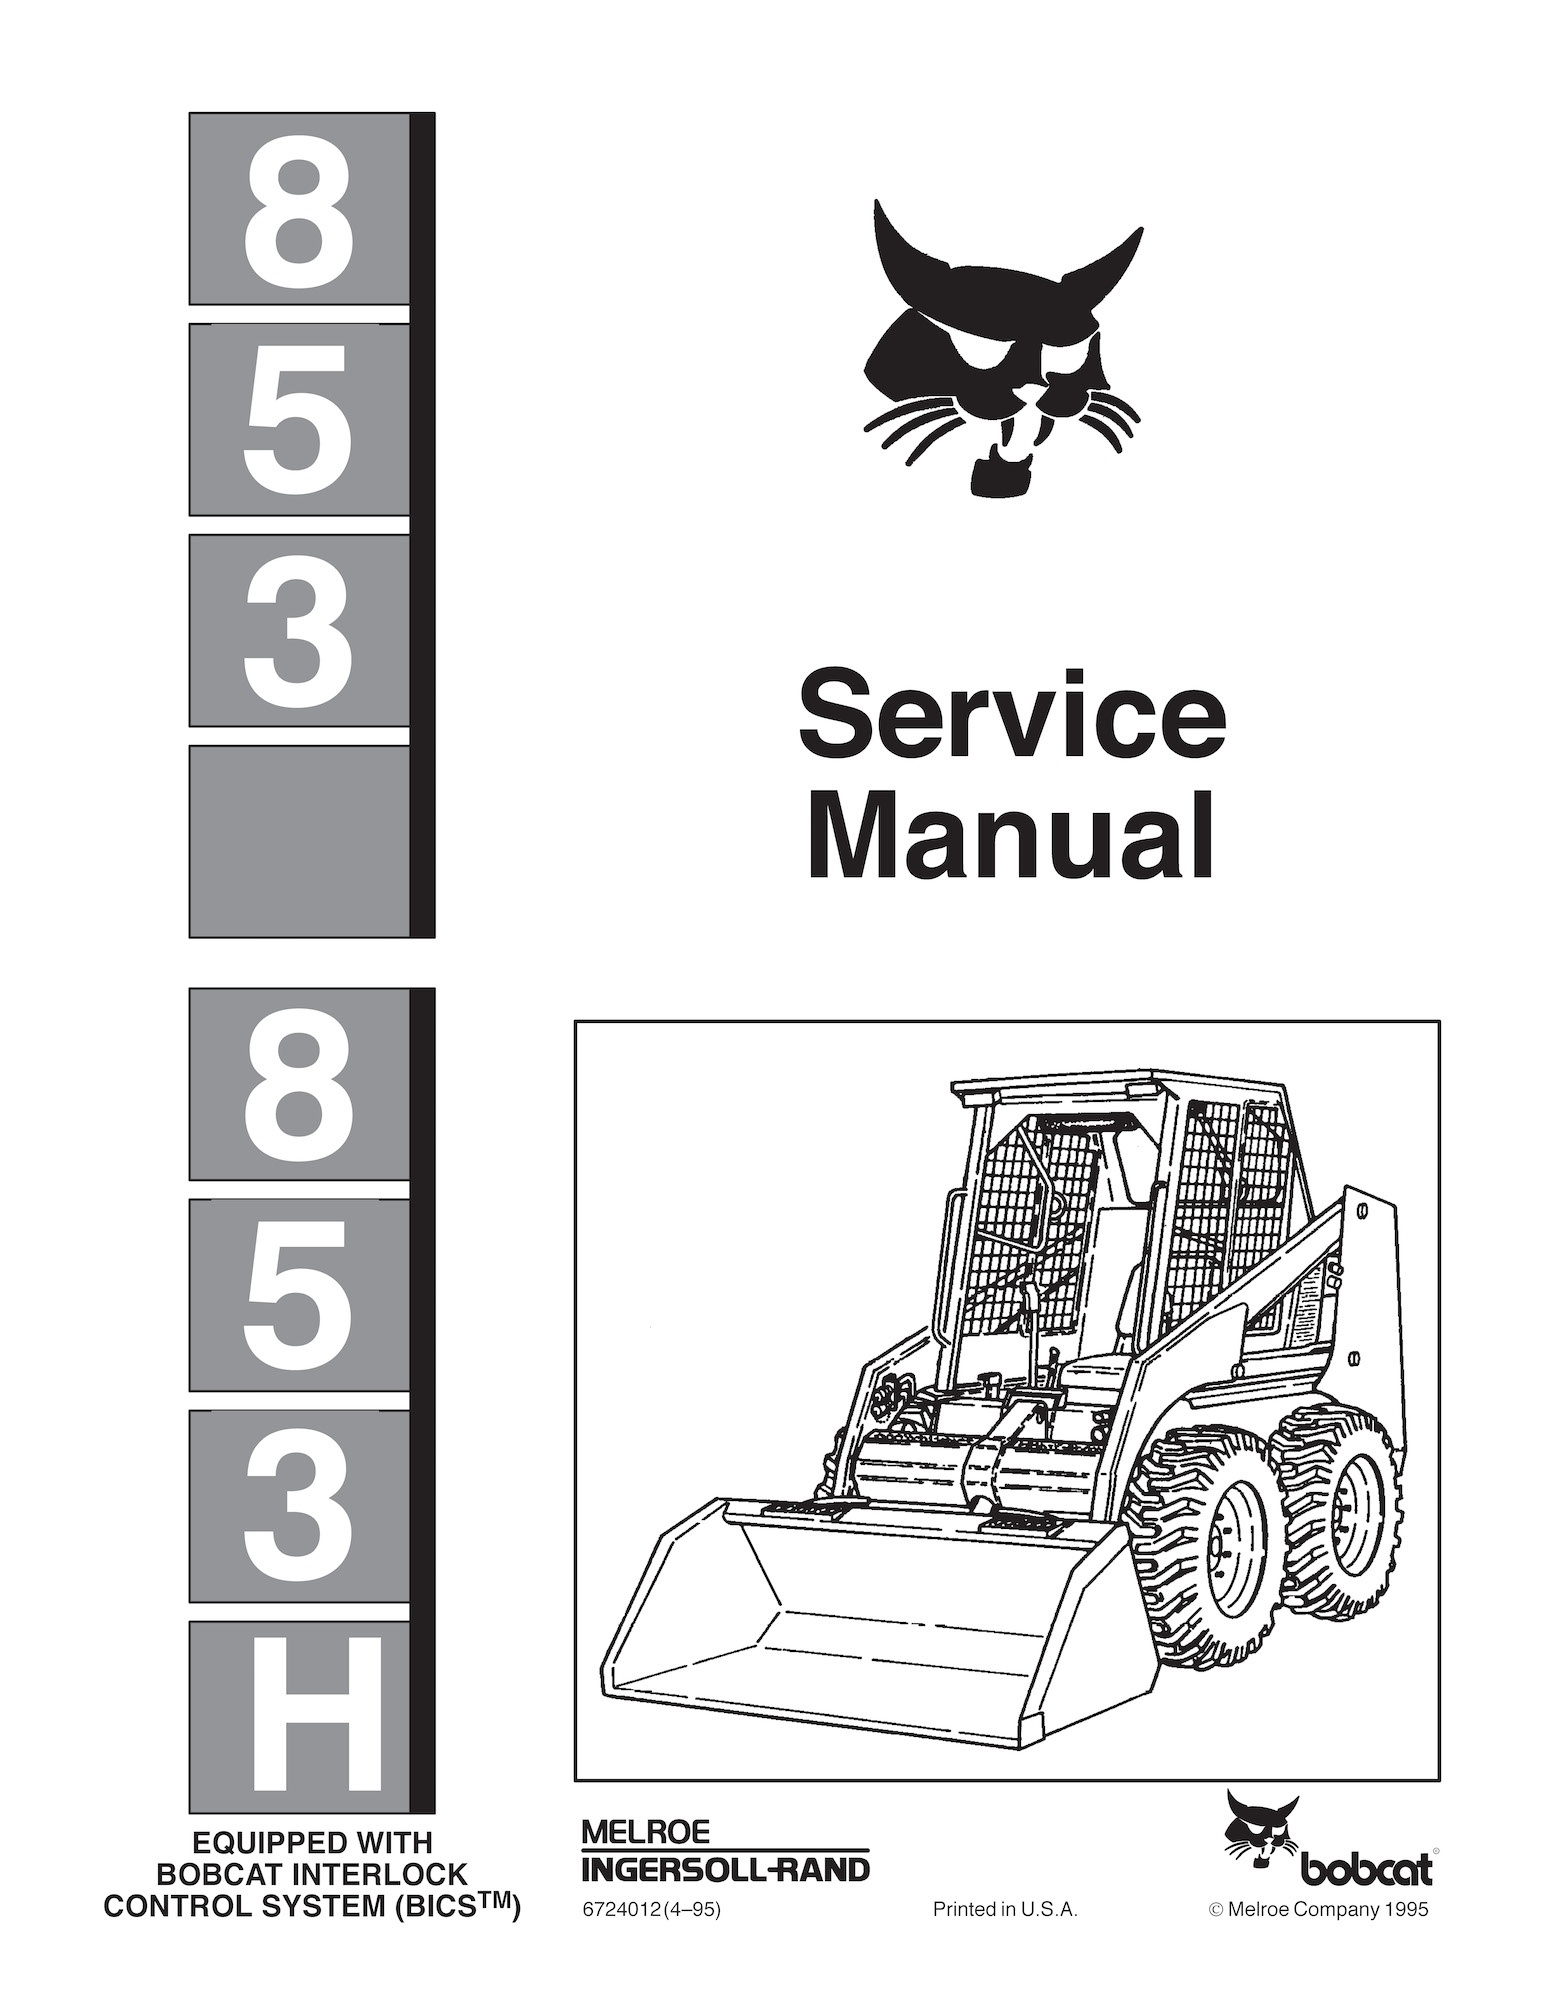 Bobcat 853 And 853h Skid Steer Loader, Oem Service And Bobcat 853 Hydraulic Diagrams  Bobcat 853 Parts Diagram